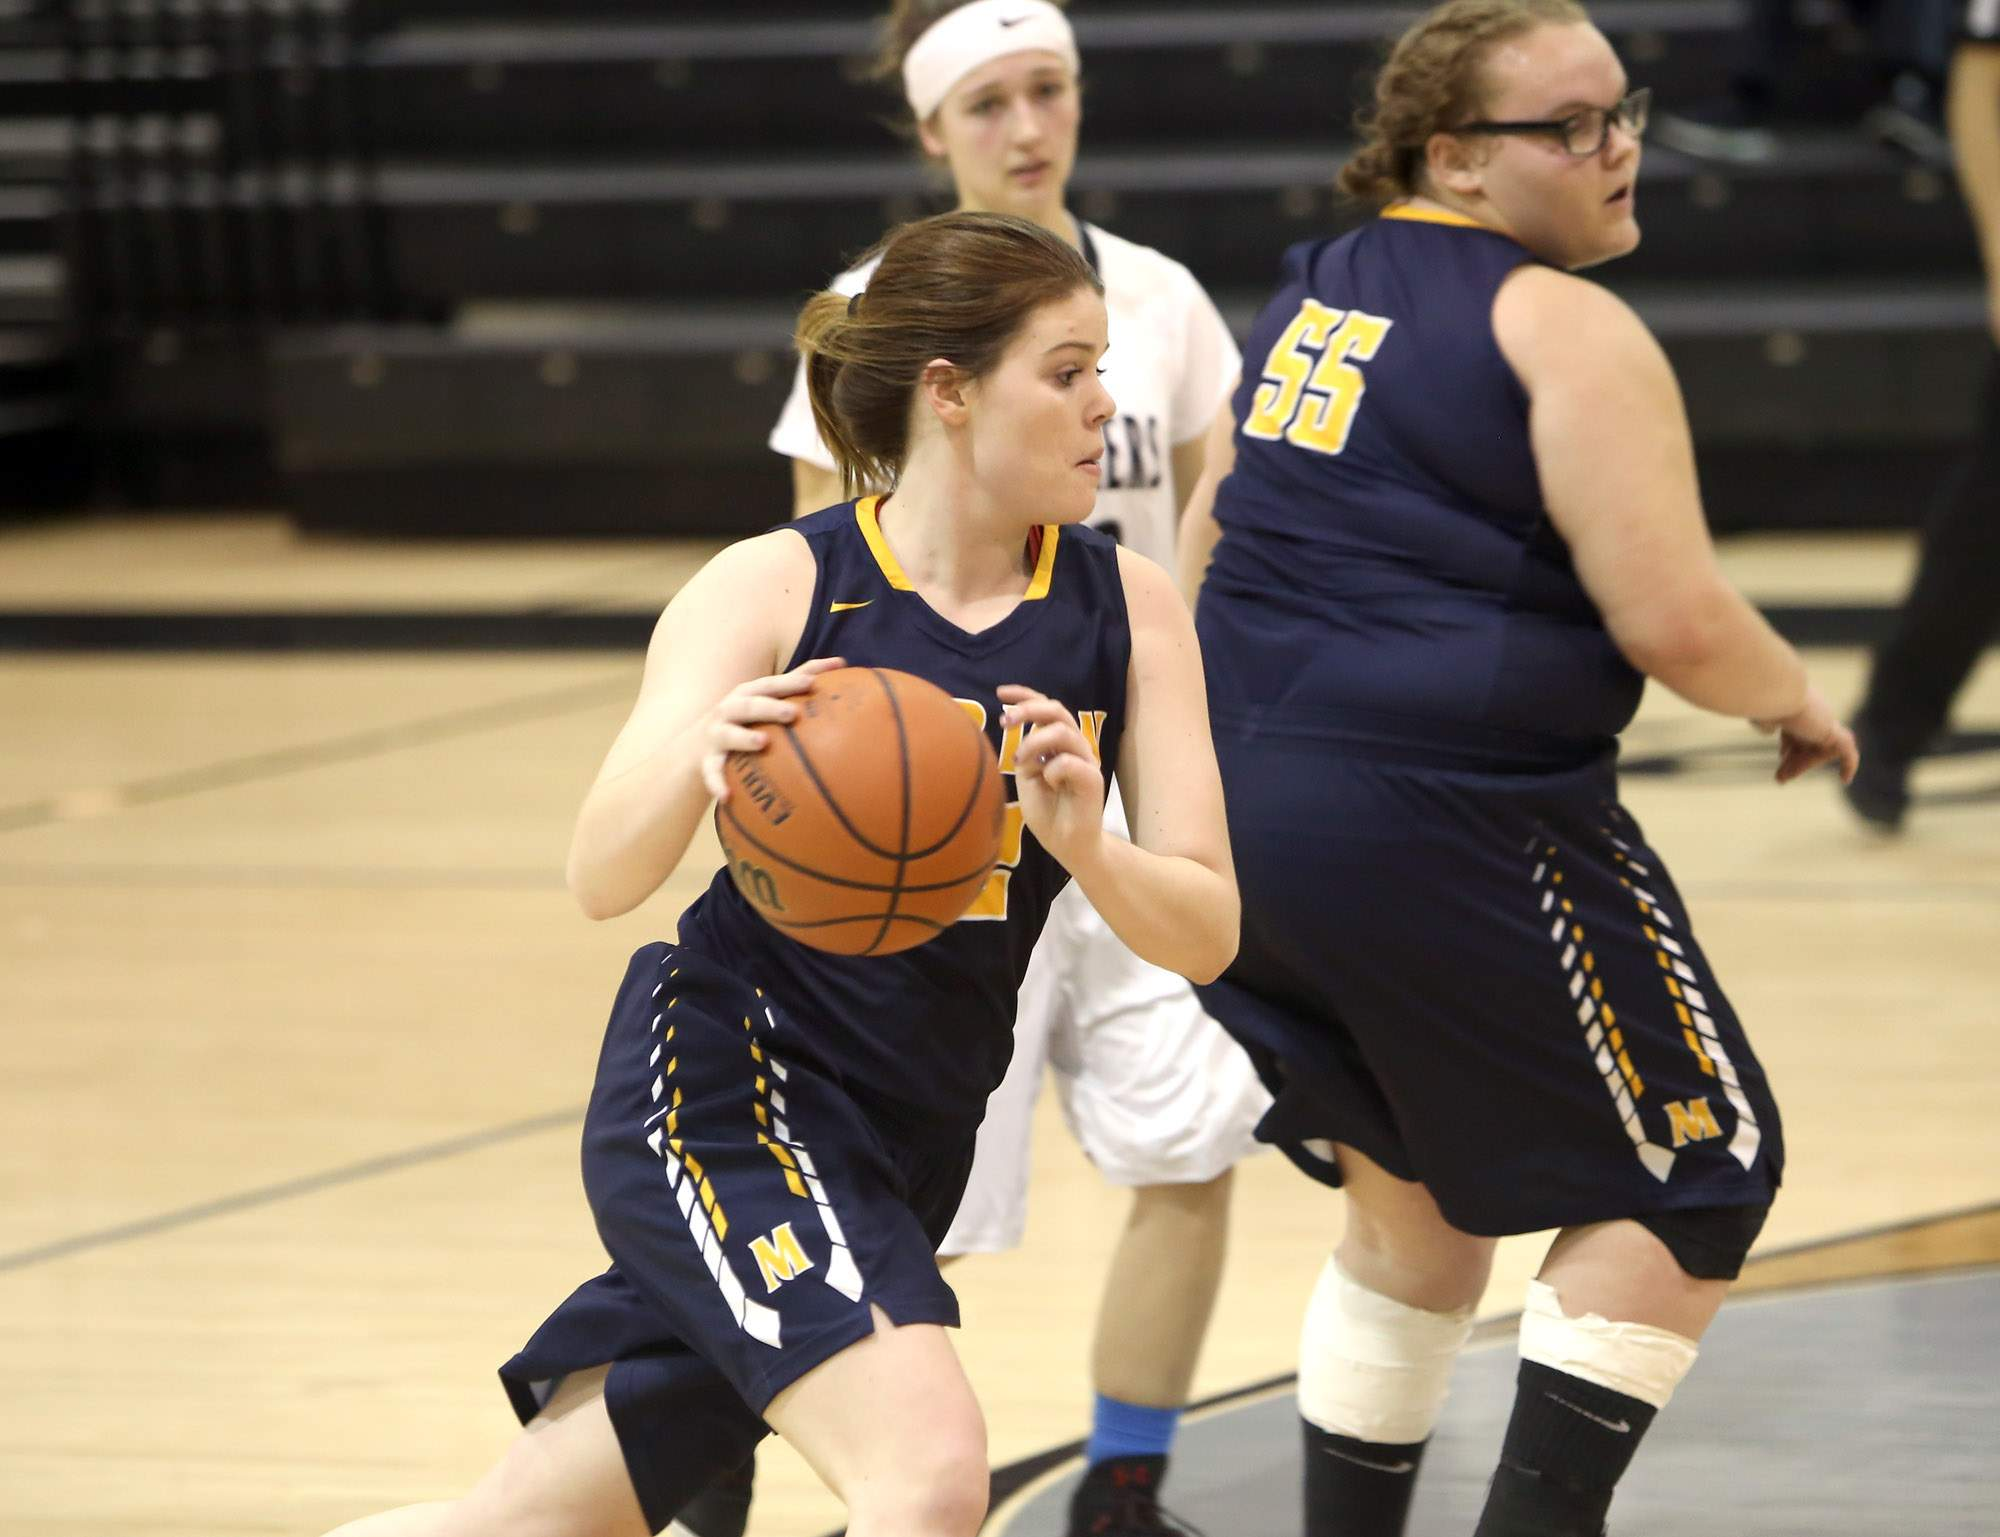 Abby Bayer drives the lane.